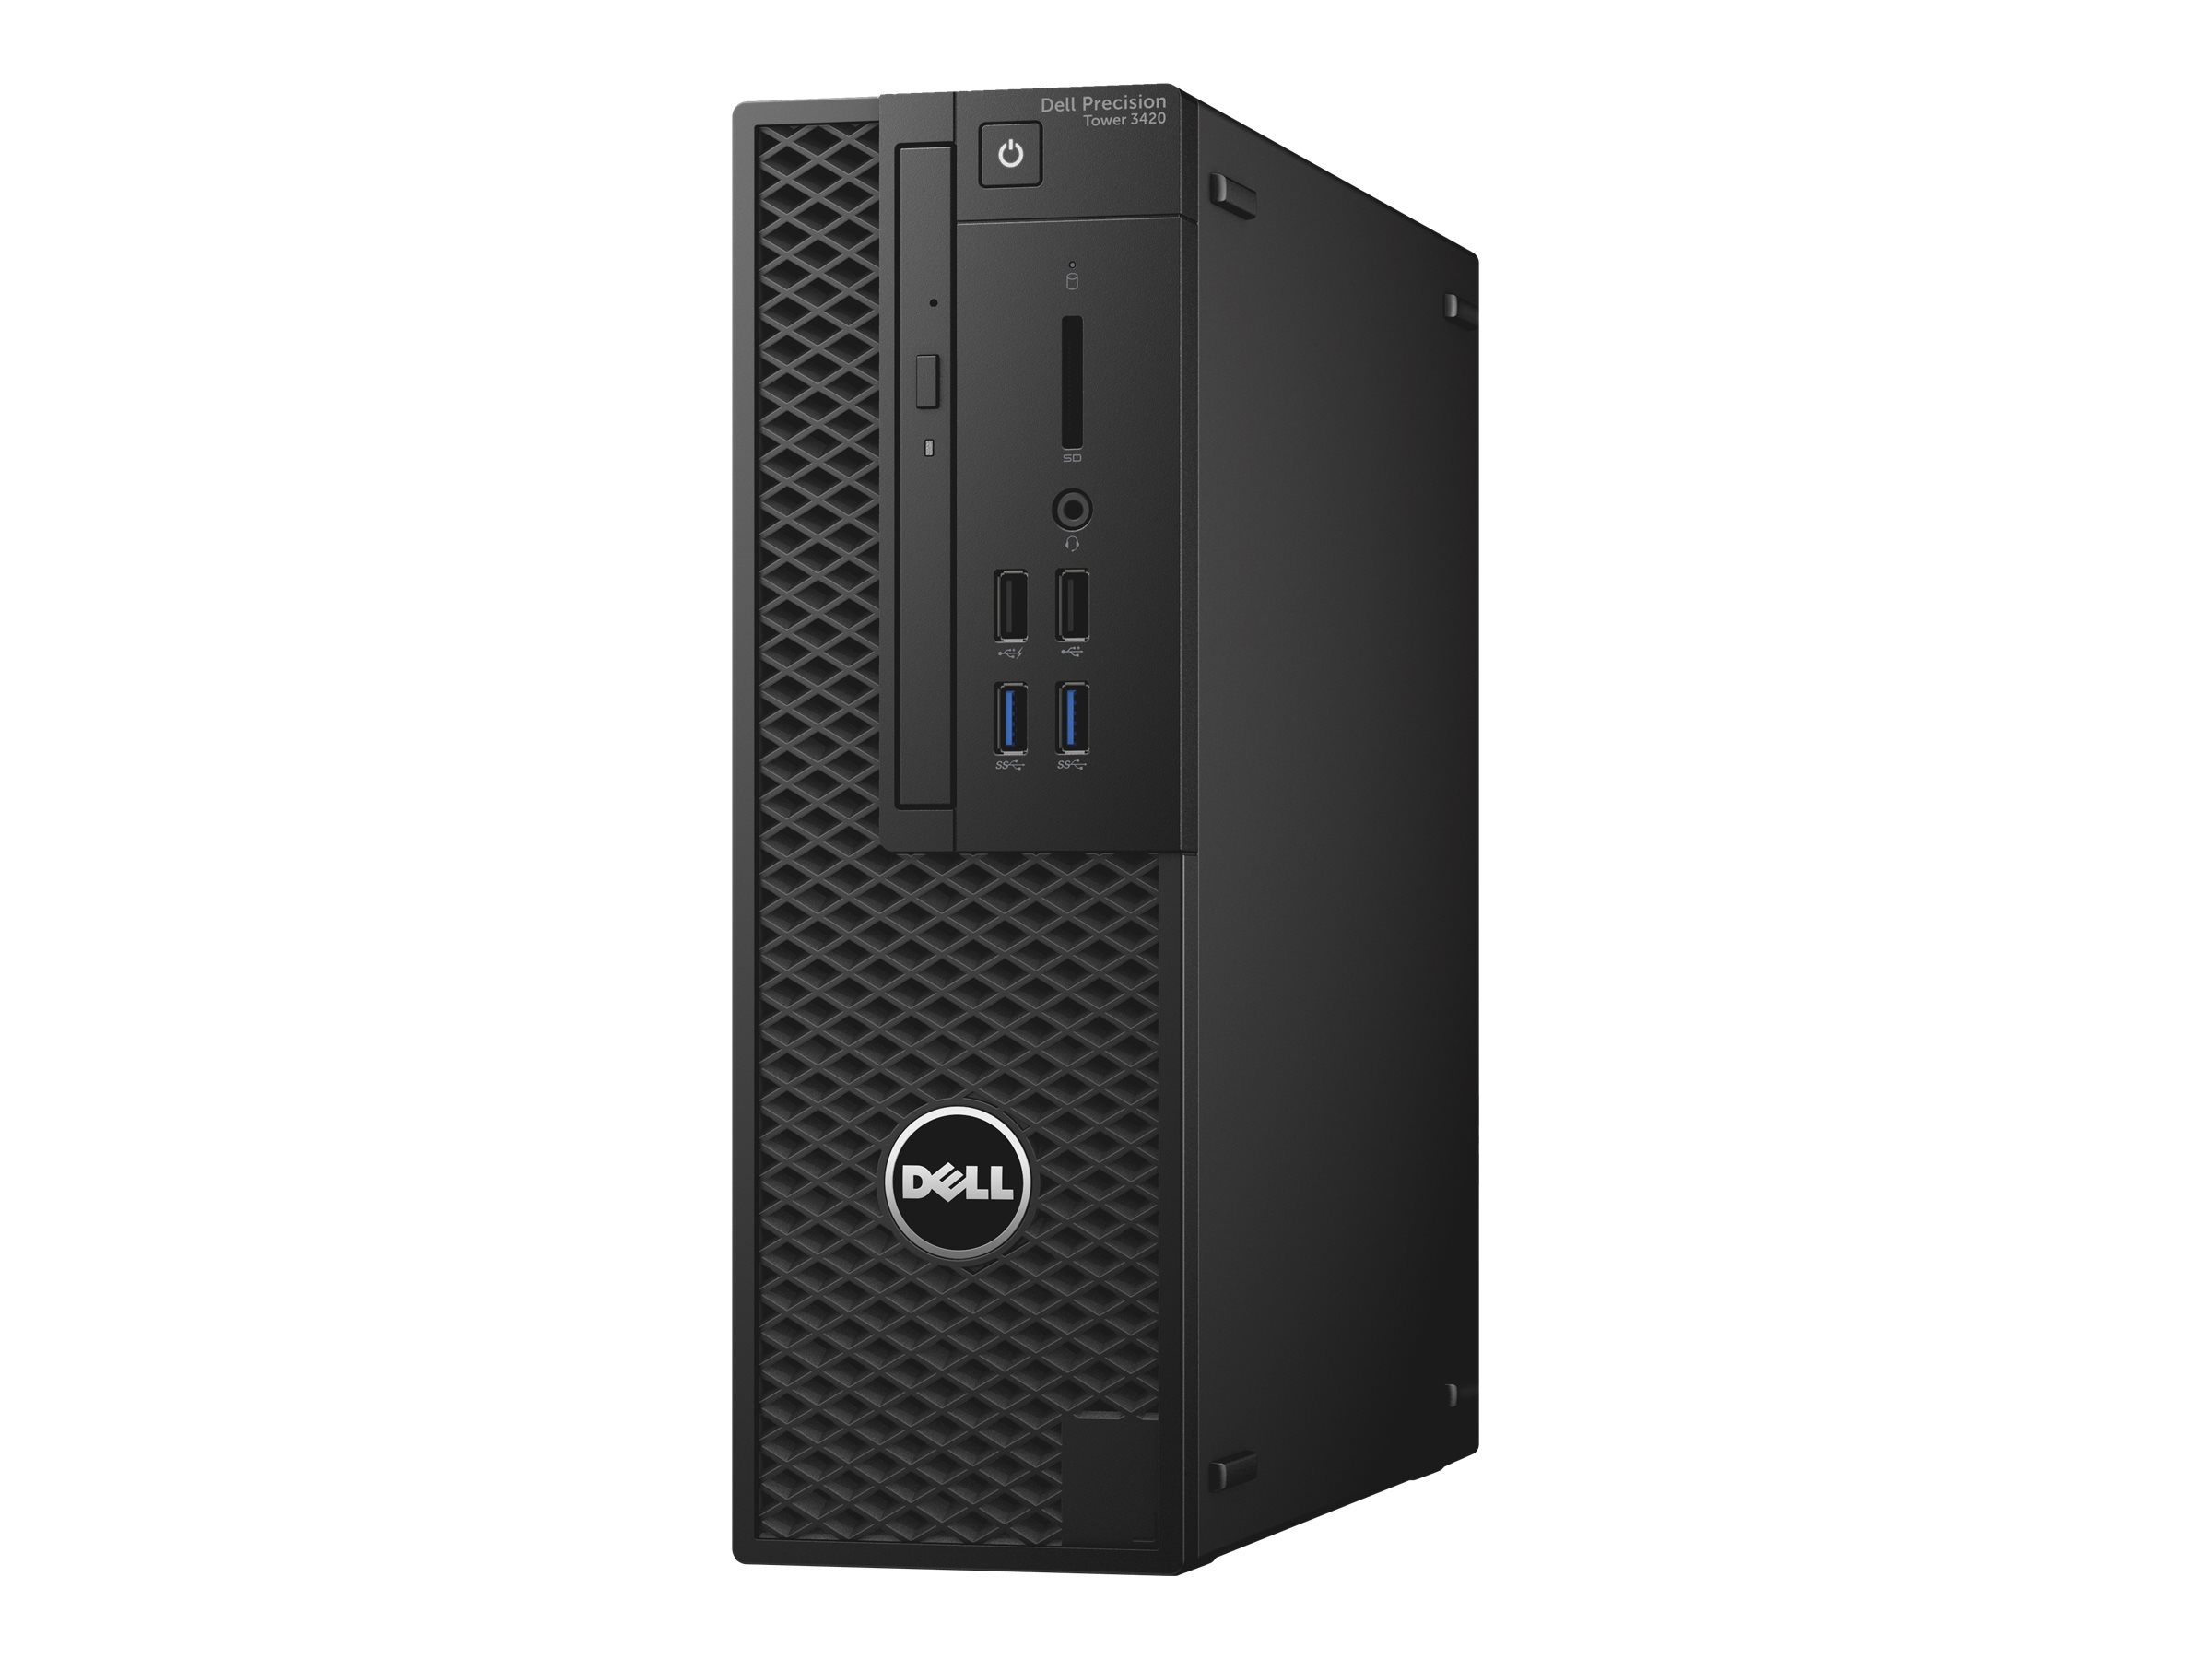 Dell Precision Tower 3420 - SFF - 1 x Core i7 6700 / 3.4 GHz - RAM 8 GB - HDD 1 TB - DVD-Writer